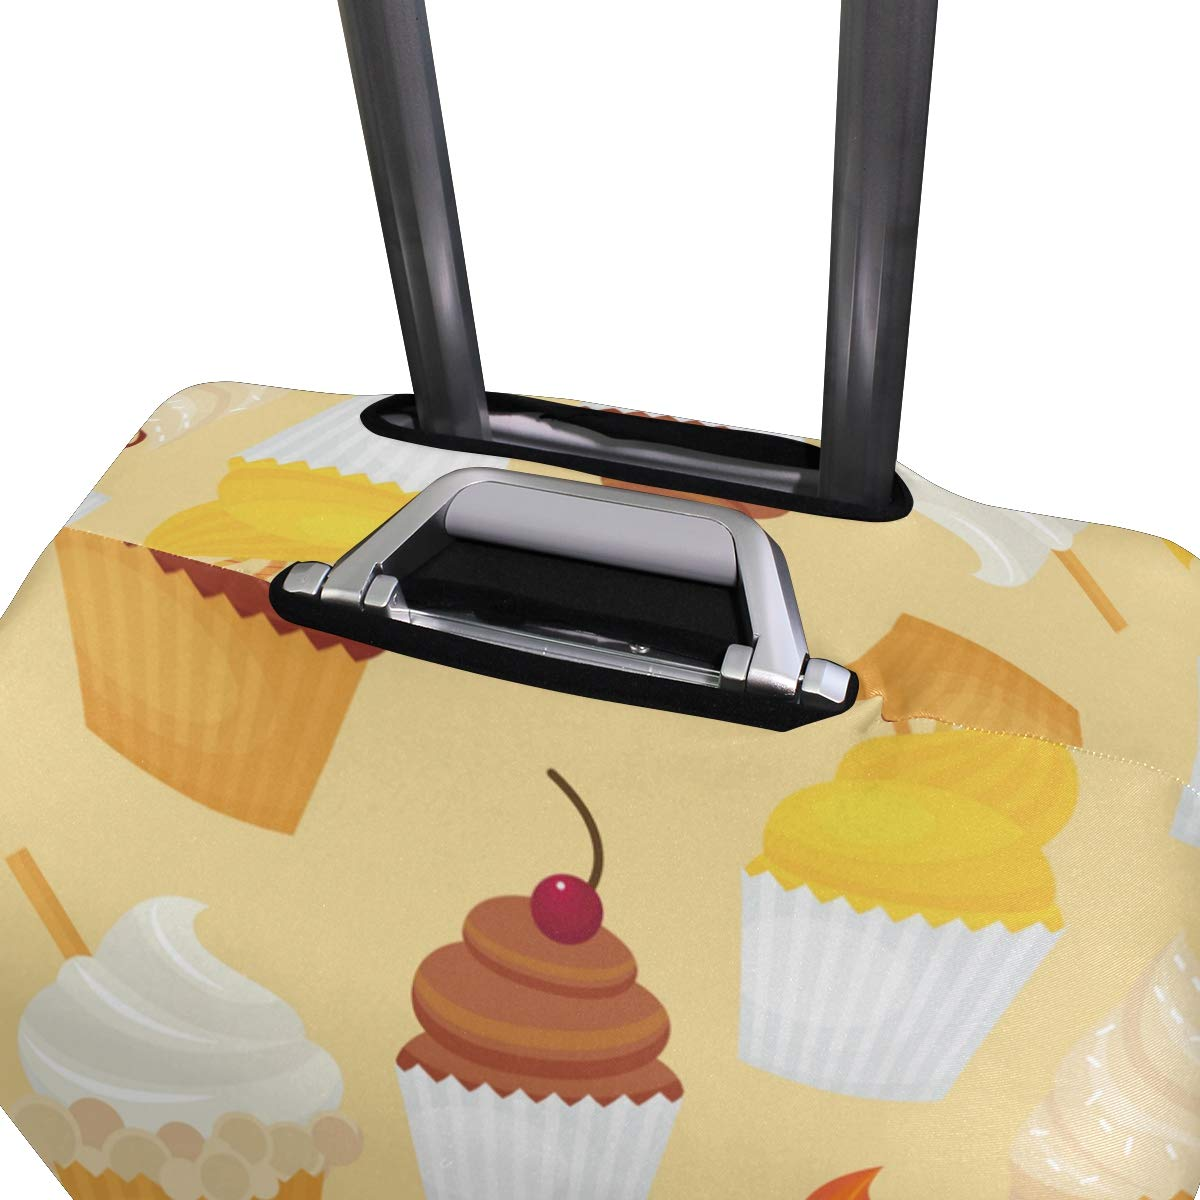 Baggage Covers Delicious Cupcakes Cherry Yellow Washable Protective Case